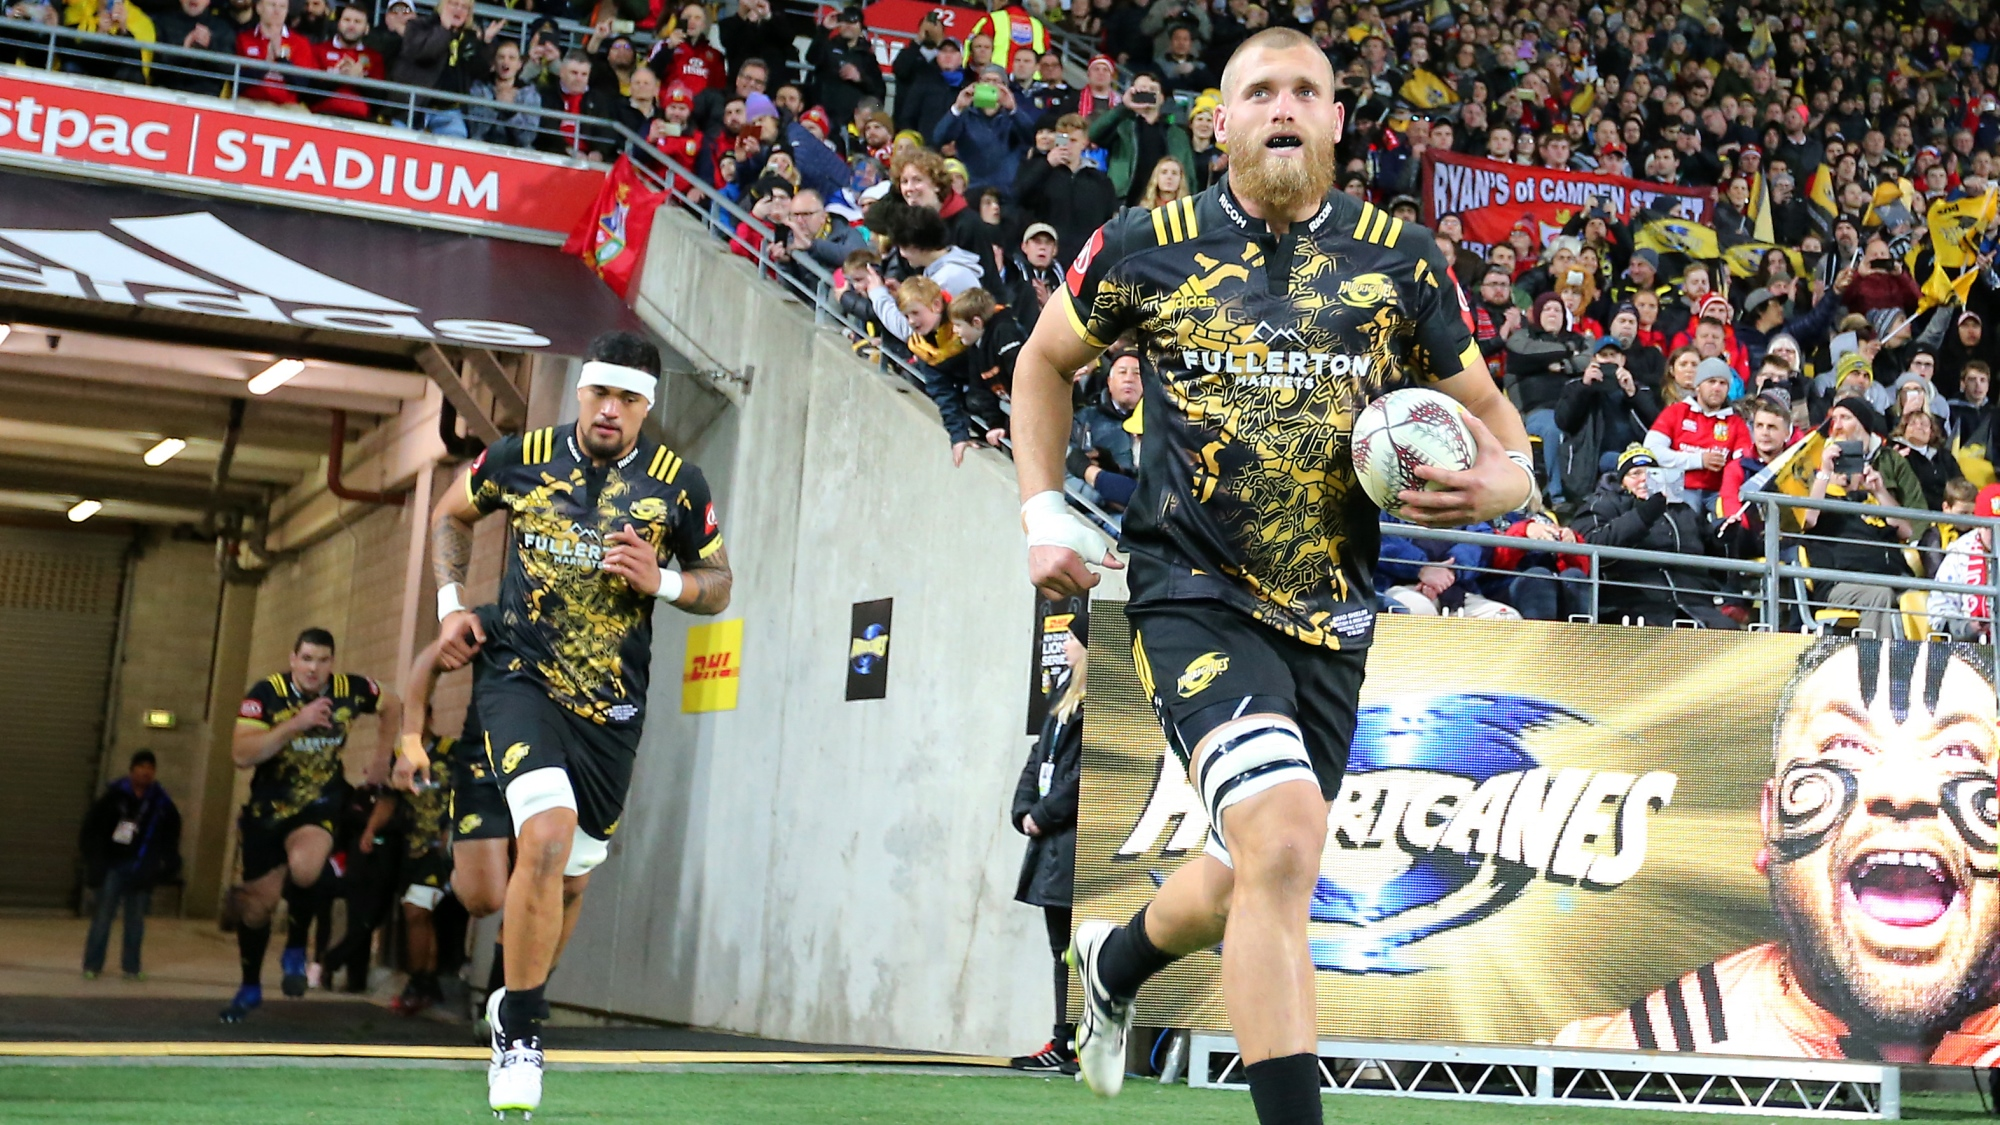 Hurricanes skipper Shields relished opportunity to face the Lions